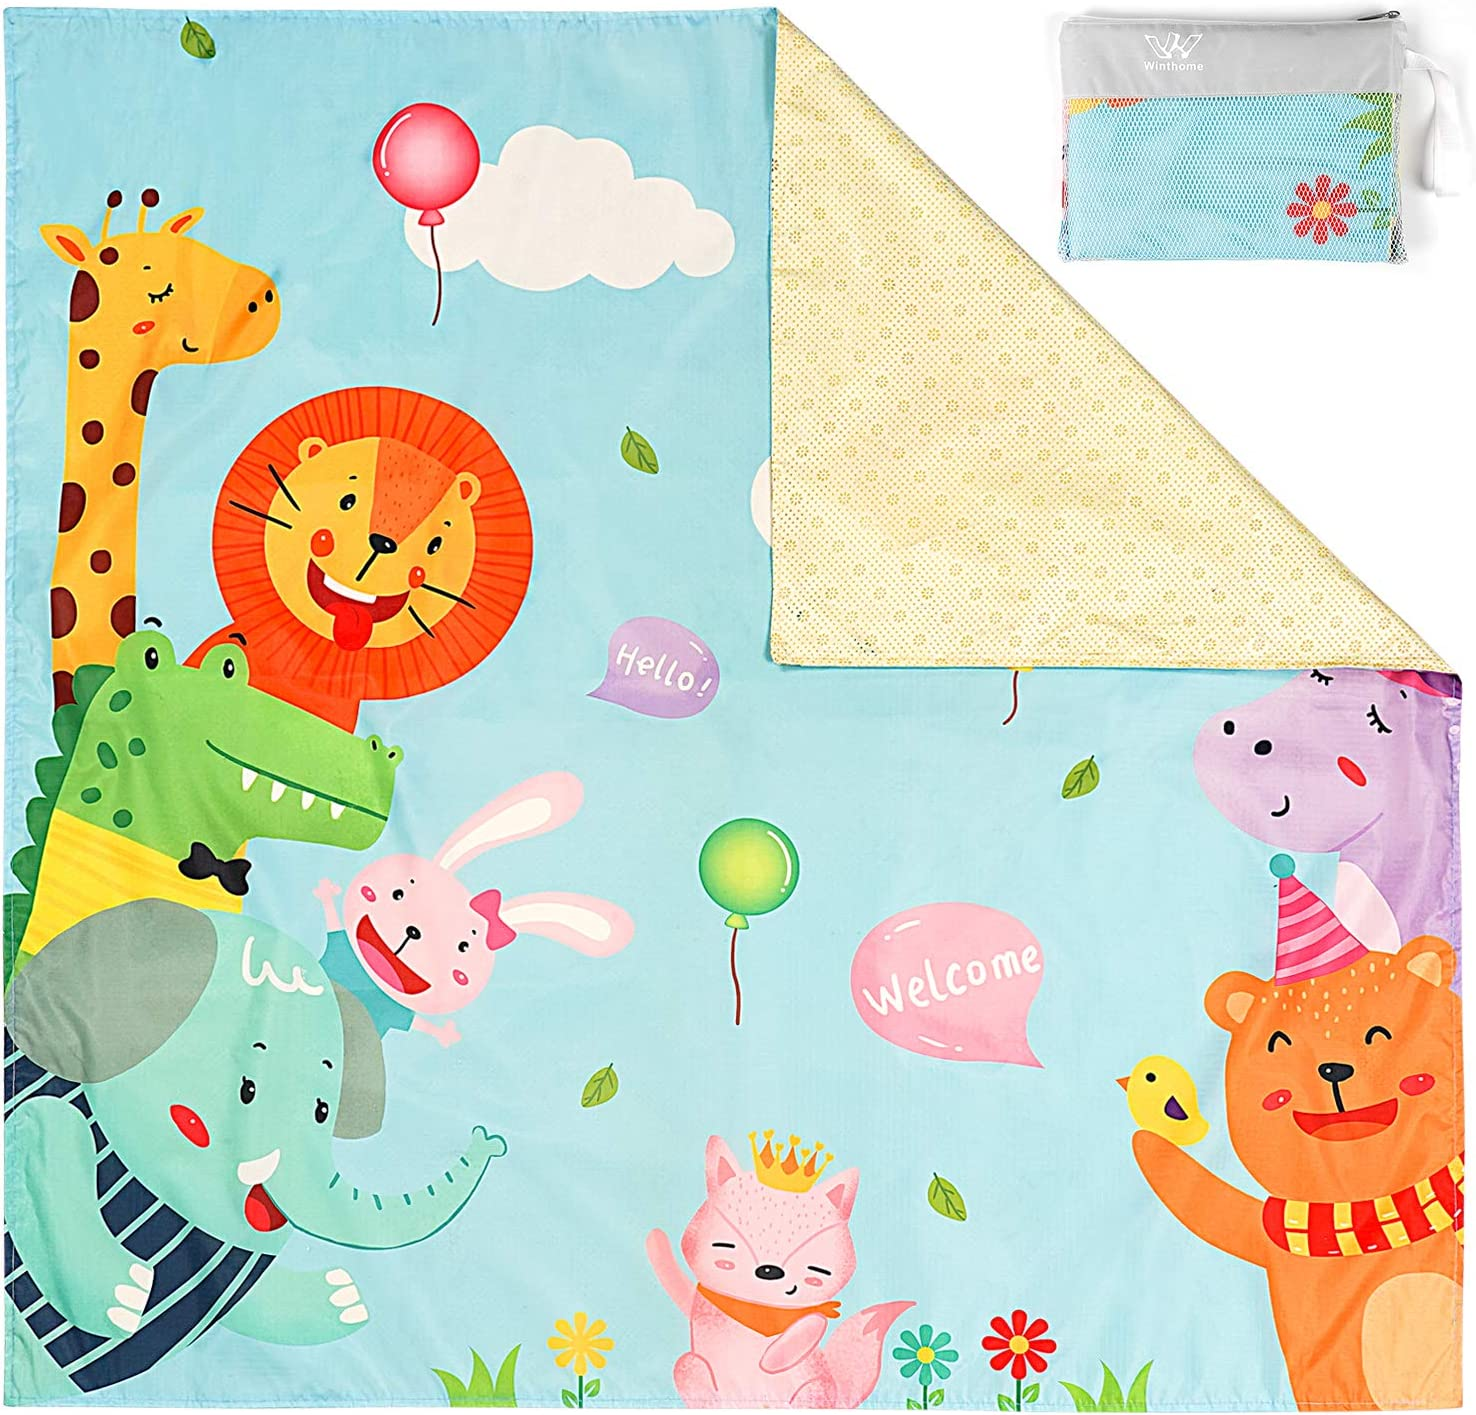 Winthome Splat Mat for Under High Chair Baby Waterproof Non Slip Floor Mat Washable Spill Splash Mat for Arts Crafts Carpet Picnic (110x110cm, Zoo )